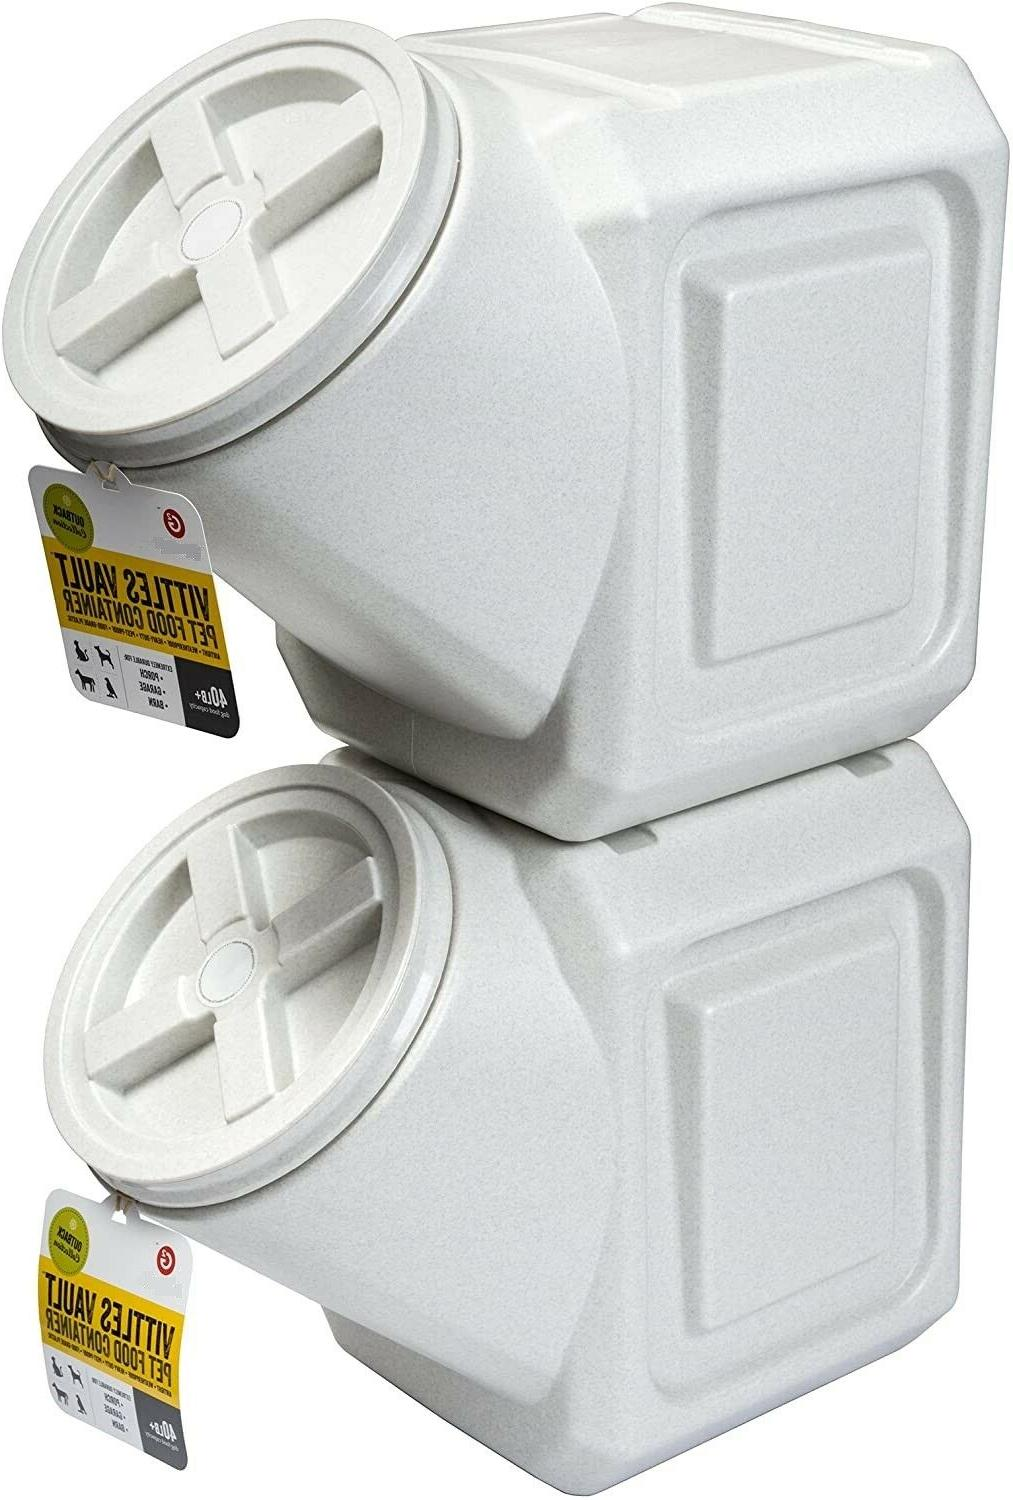 New Food Airtight Container Stackable Outback